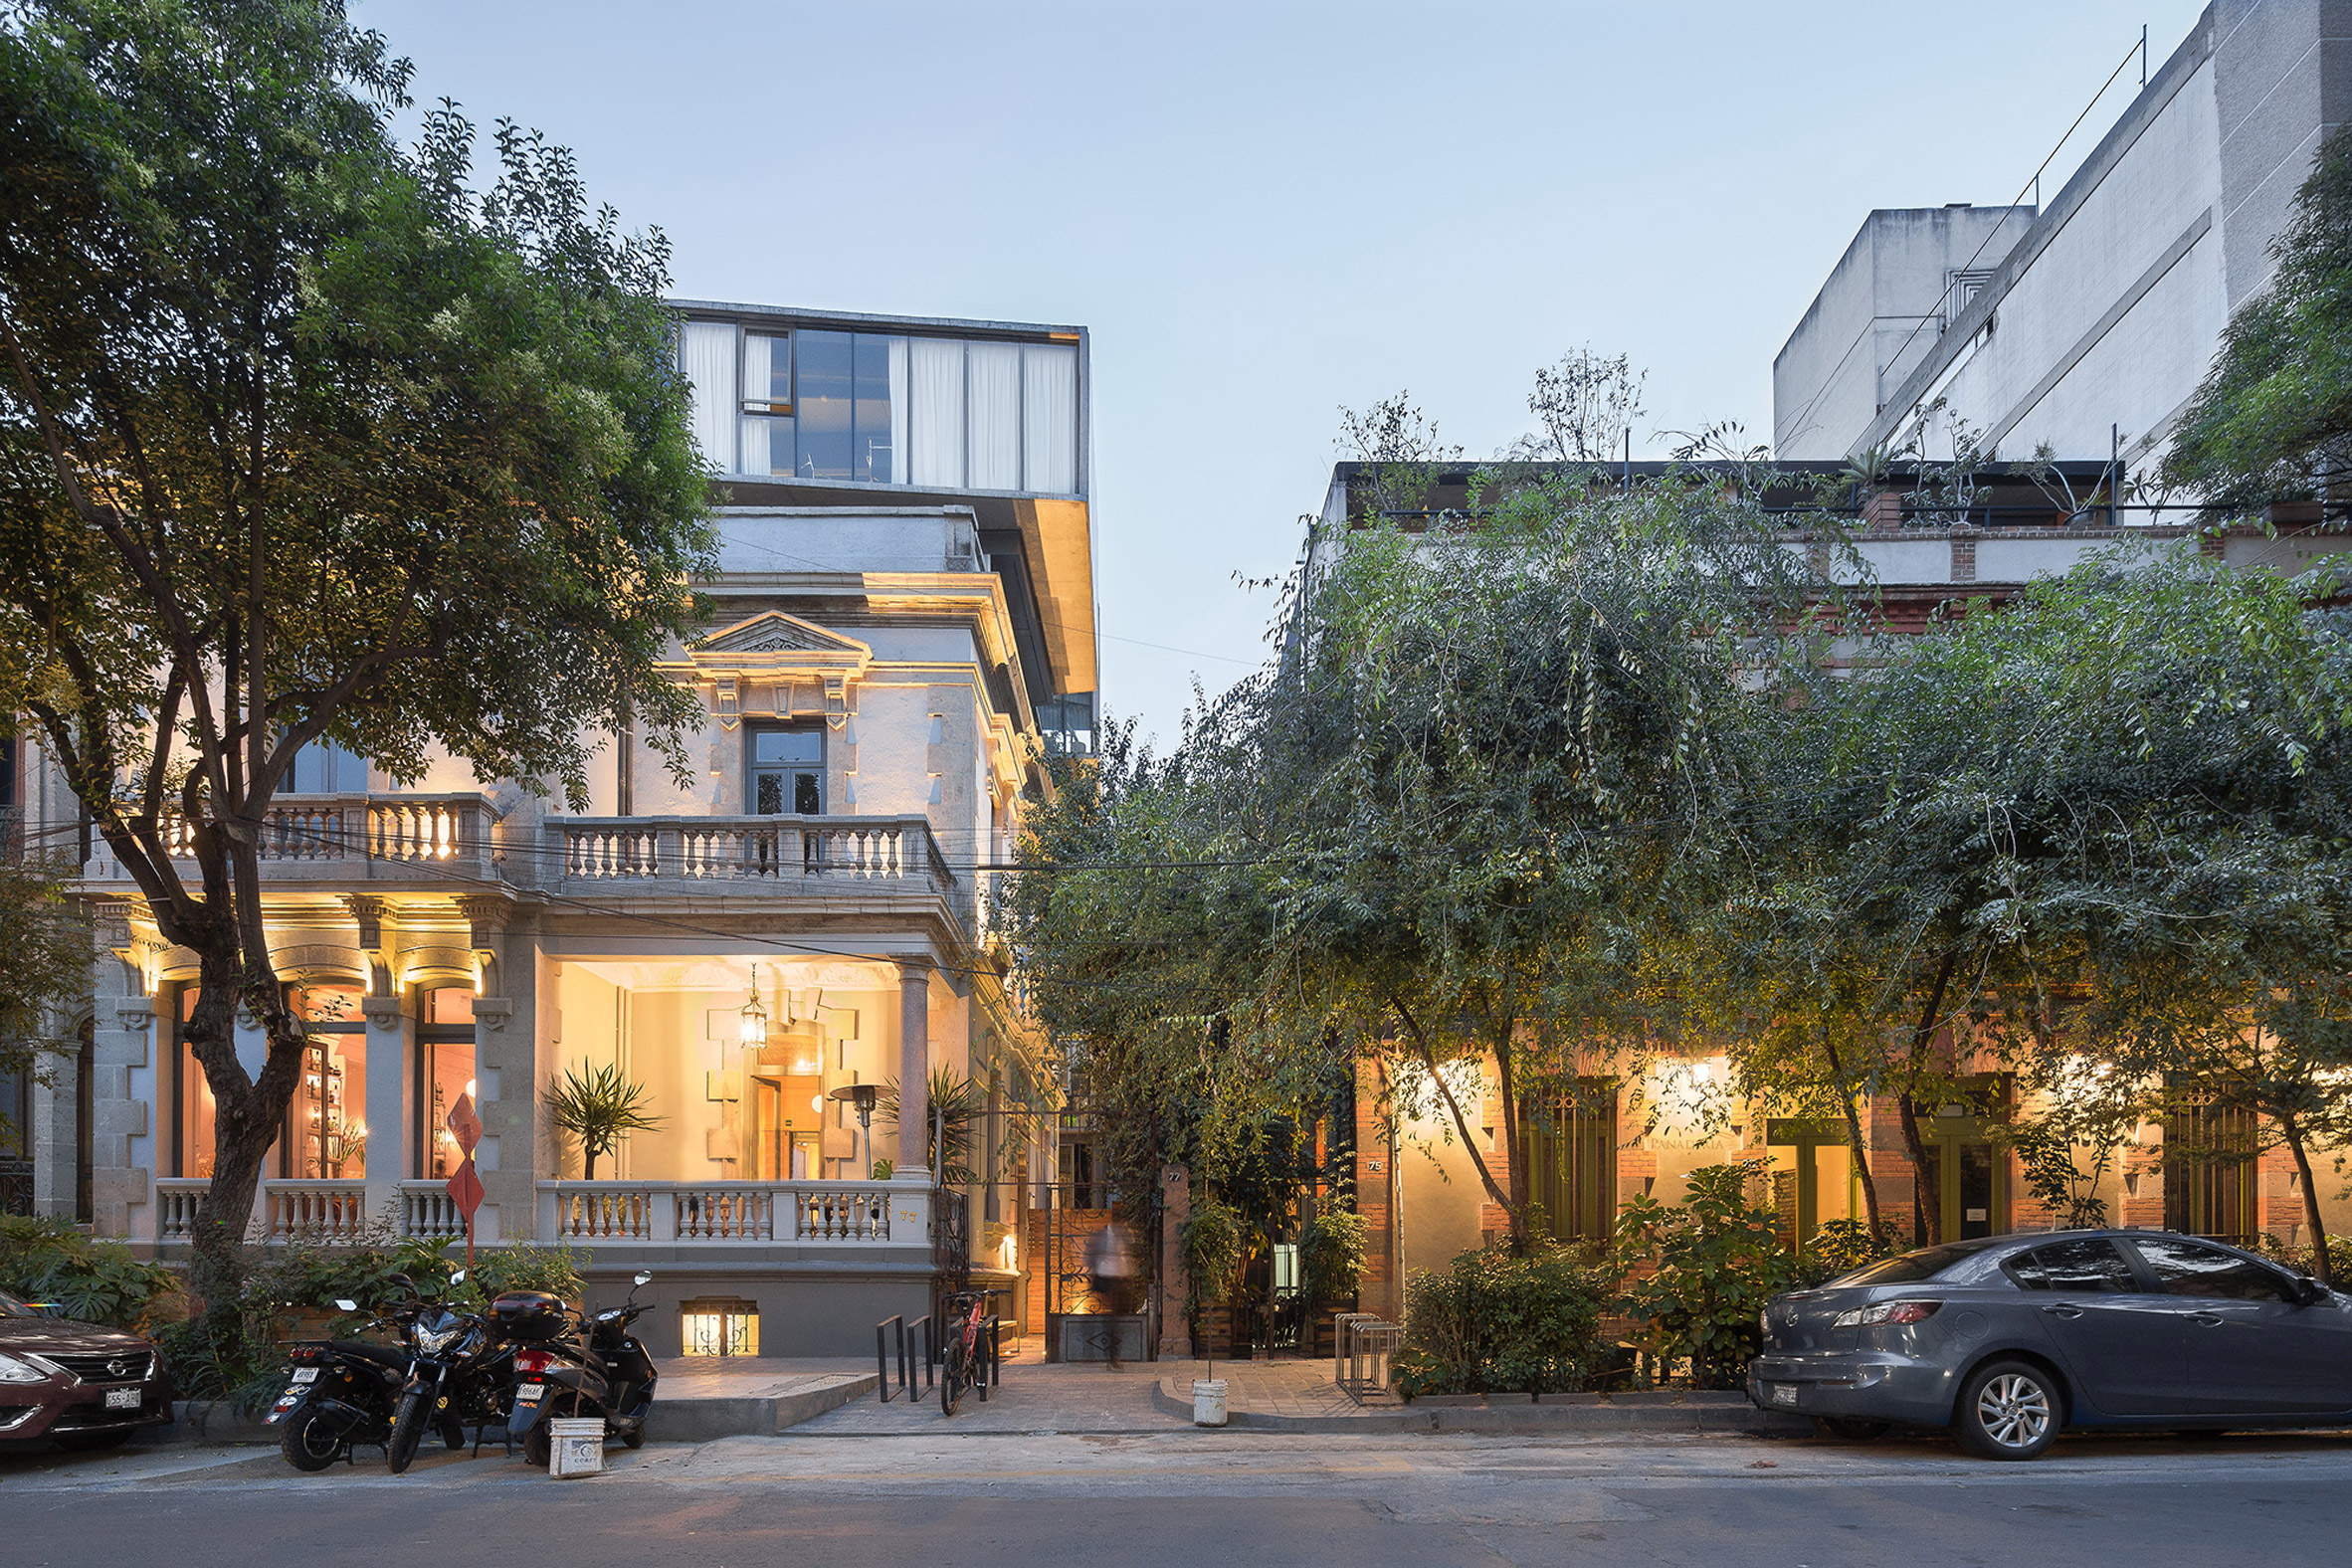 Derelict Mexico City transformed into mixed-use venue